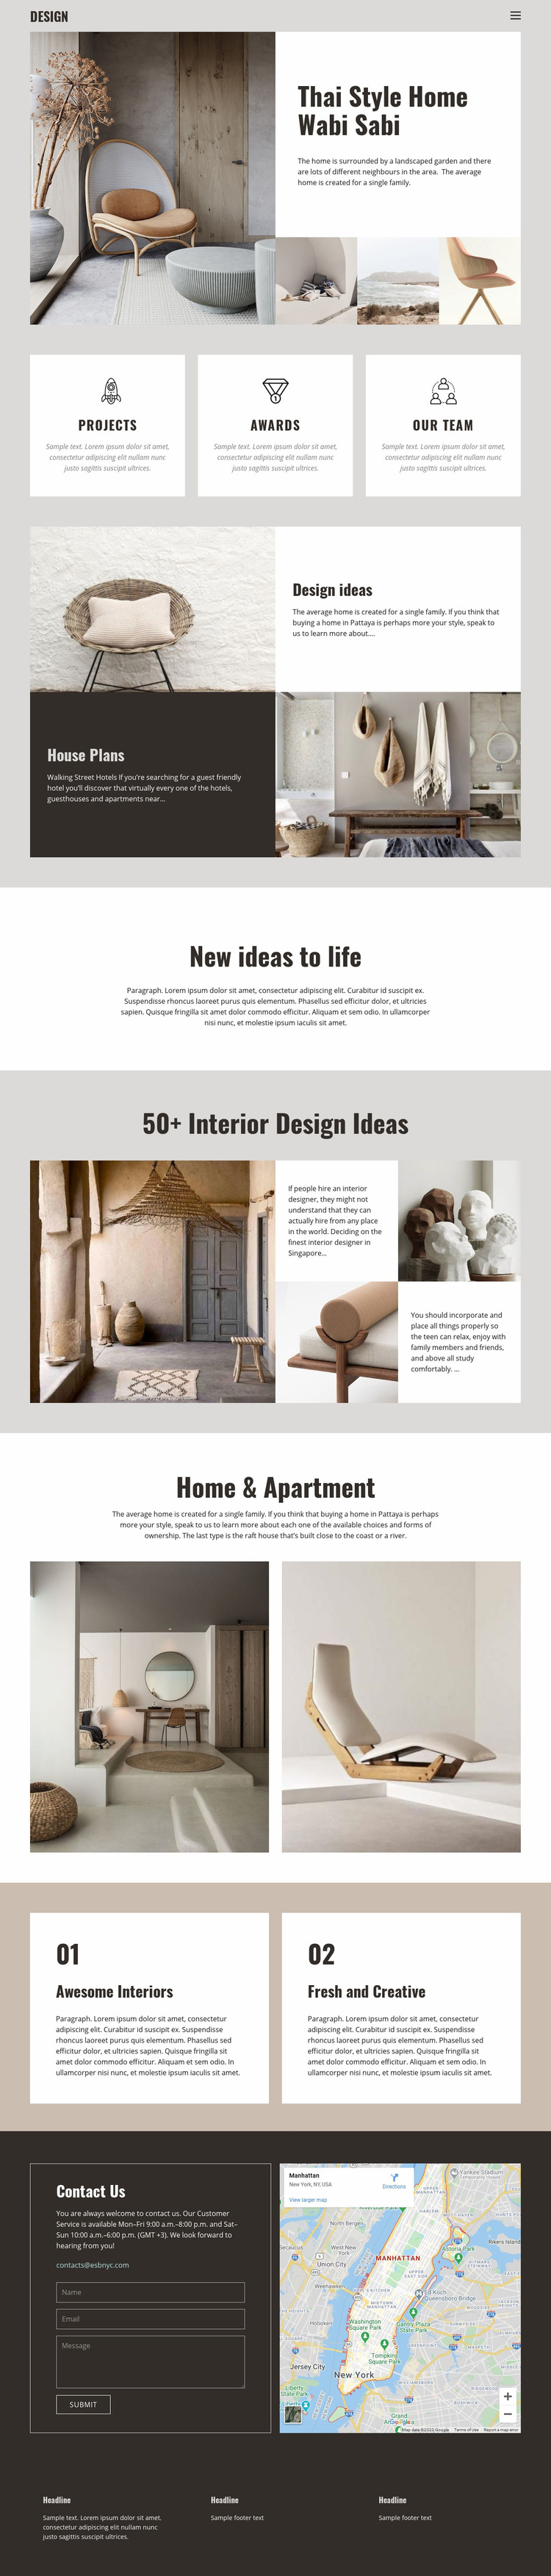 Thai style for home design Web Page Design